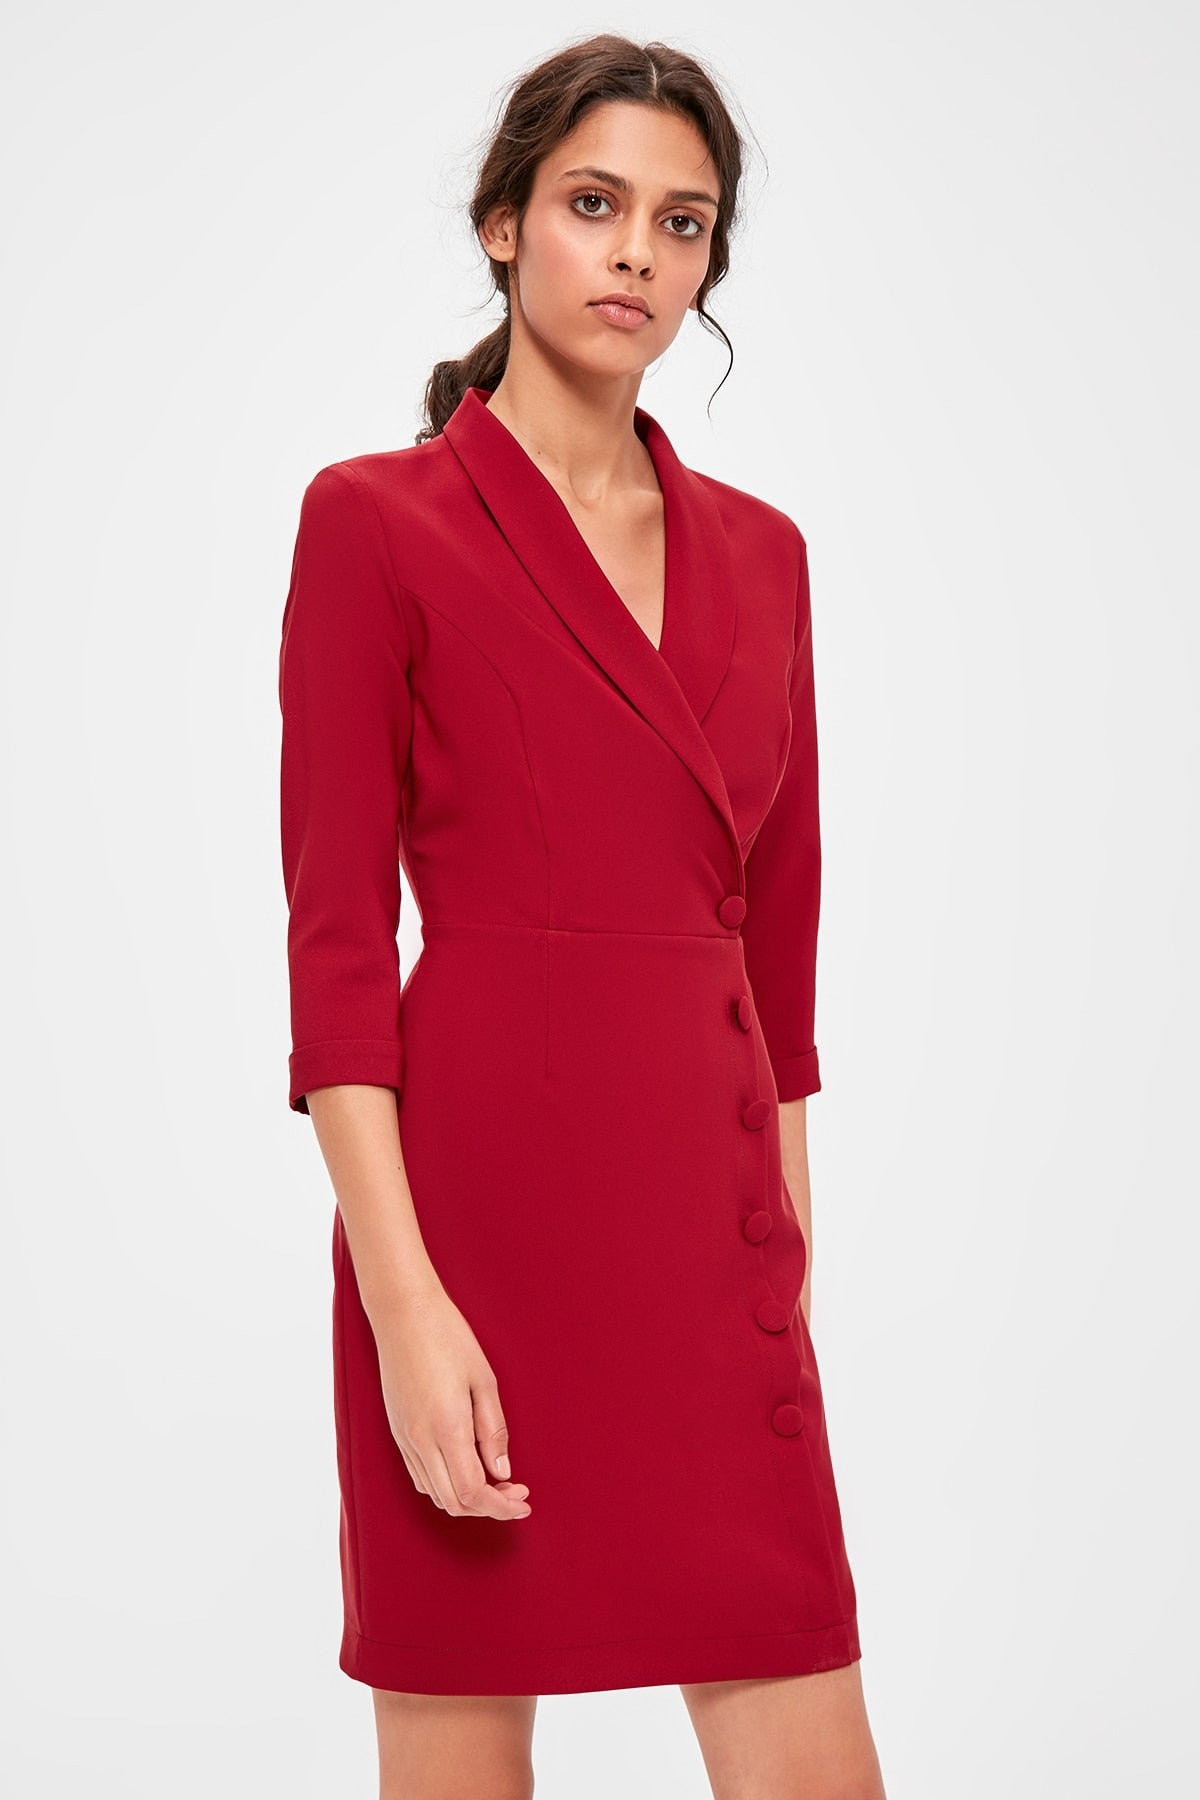 Burgundy Double Breasted Collar Dress